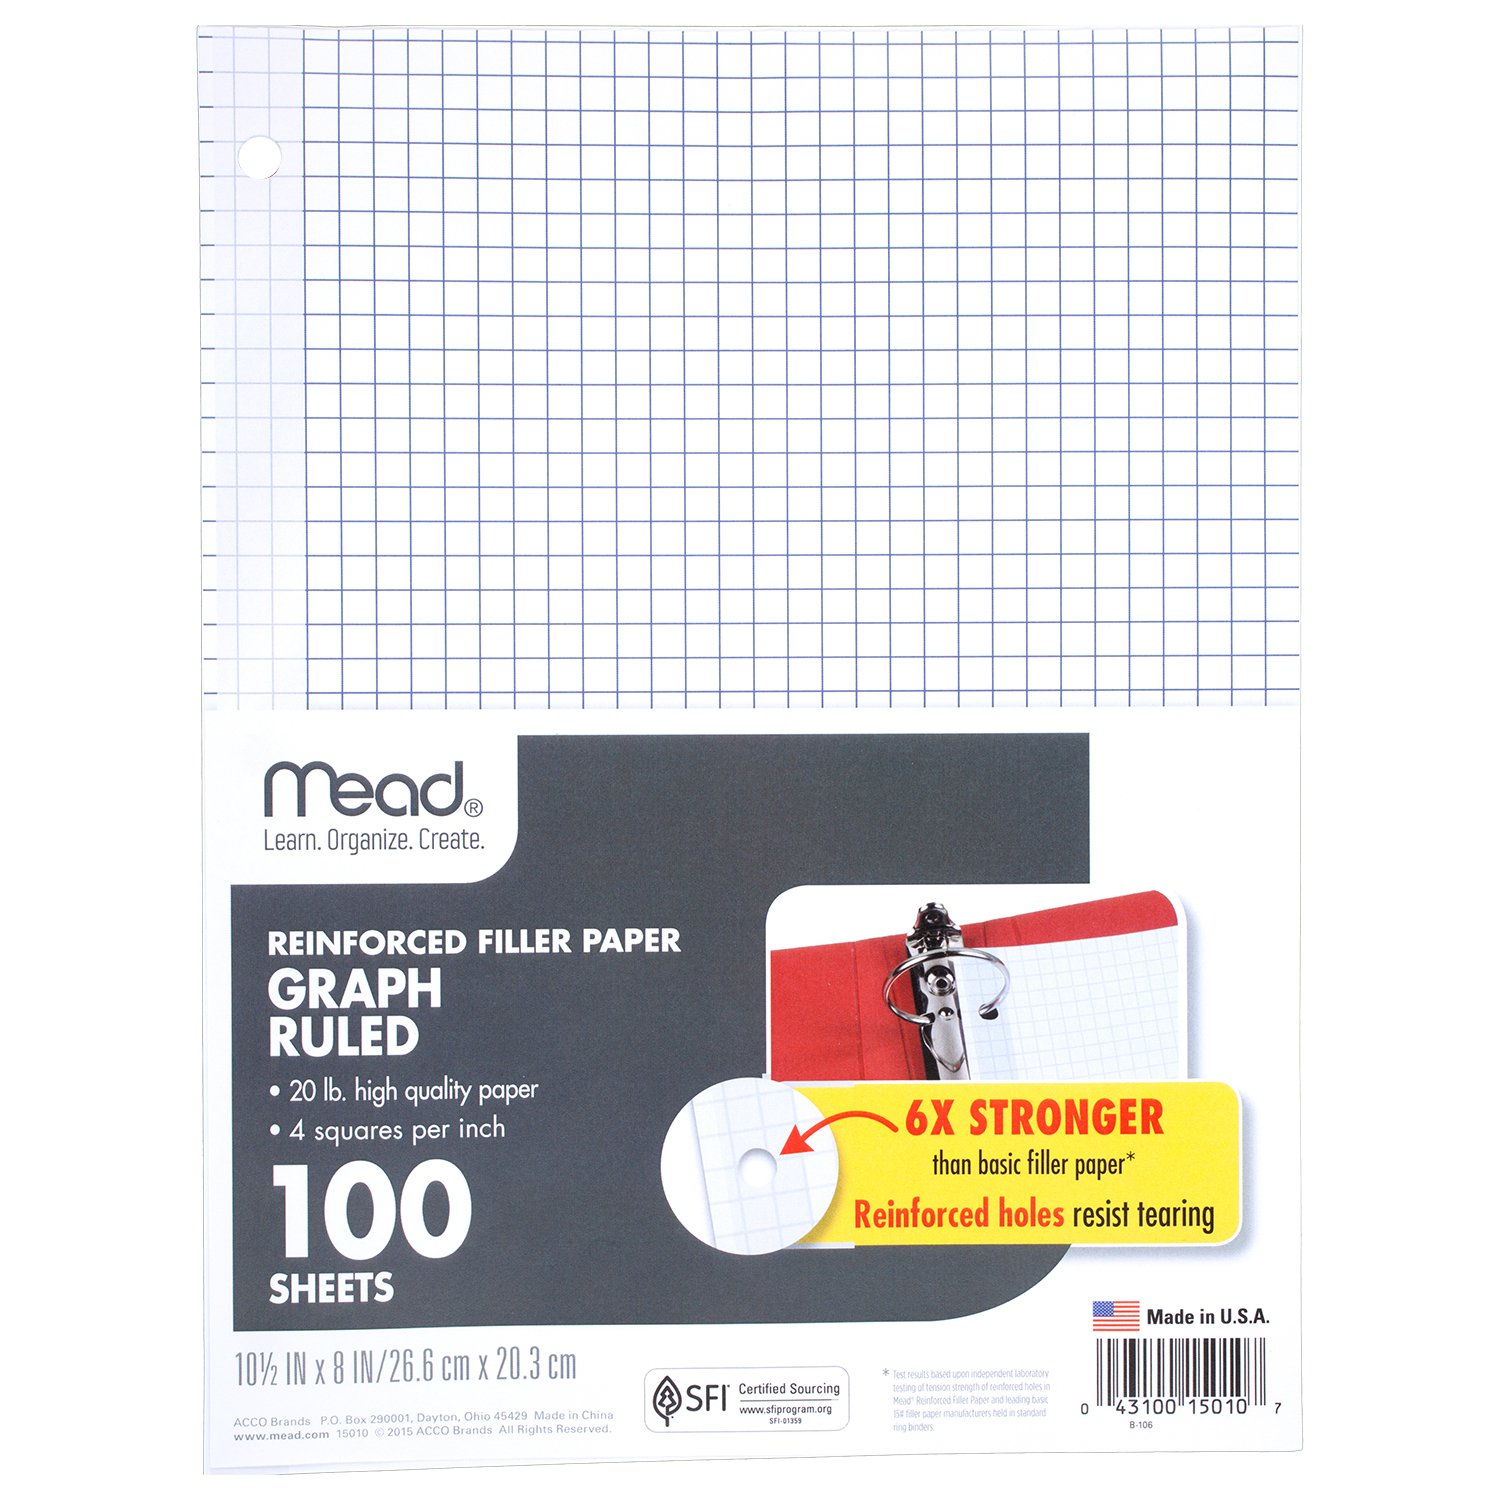 Mead Filler Paper, Loose Leaf Paper, Graph Ruled Paper, Q4, 100 Sheets, 10-1/2'' x 8'', Reinforced, White, 3 Pack (38040) by Mead (Image #2)